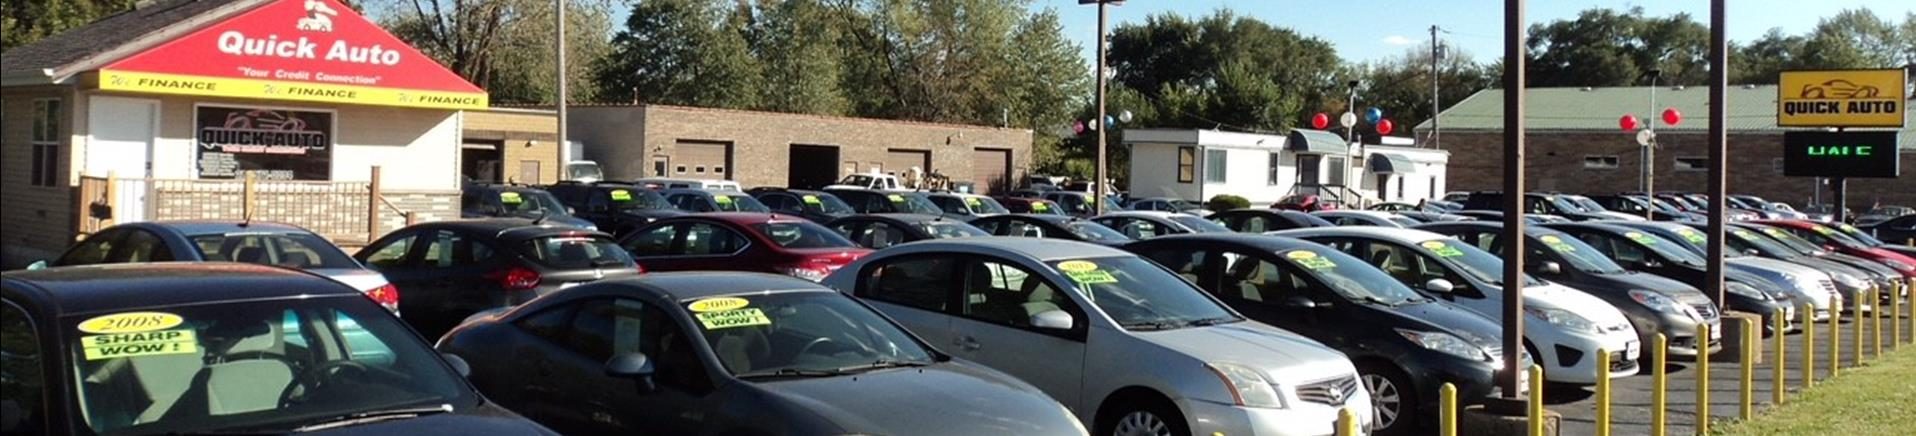 Used Cars Highland IN | Used Cars & Trucks IN | Quick Auto Highland